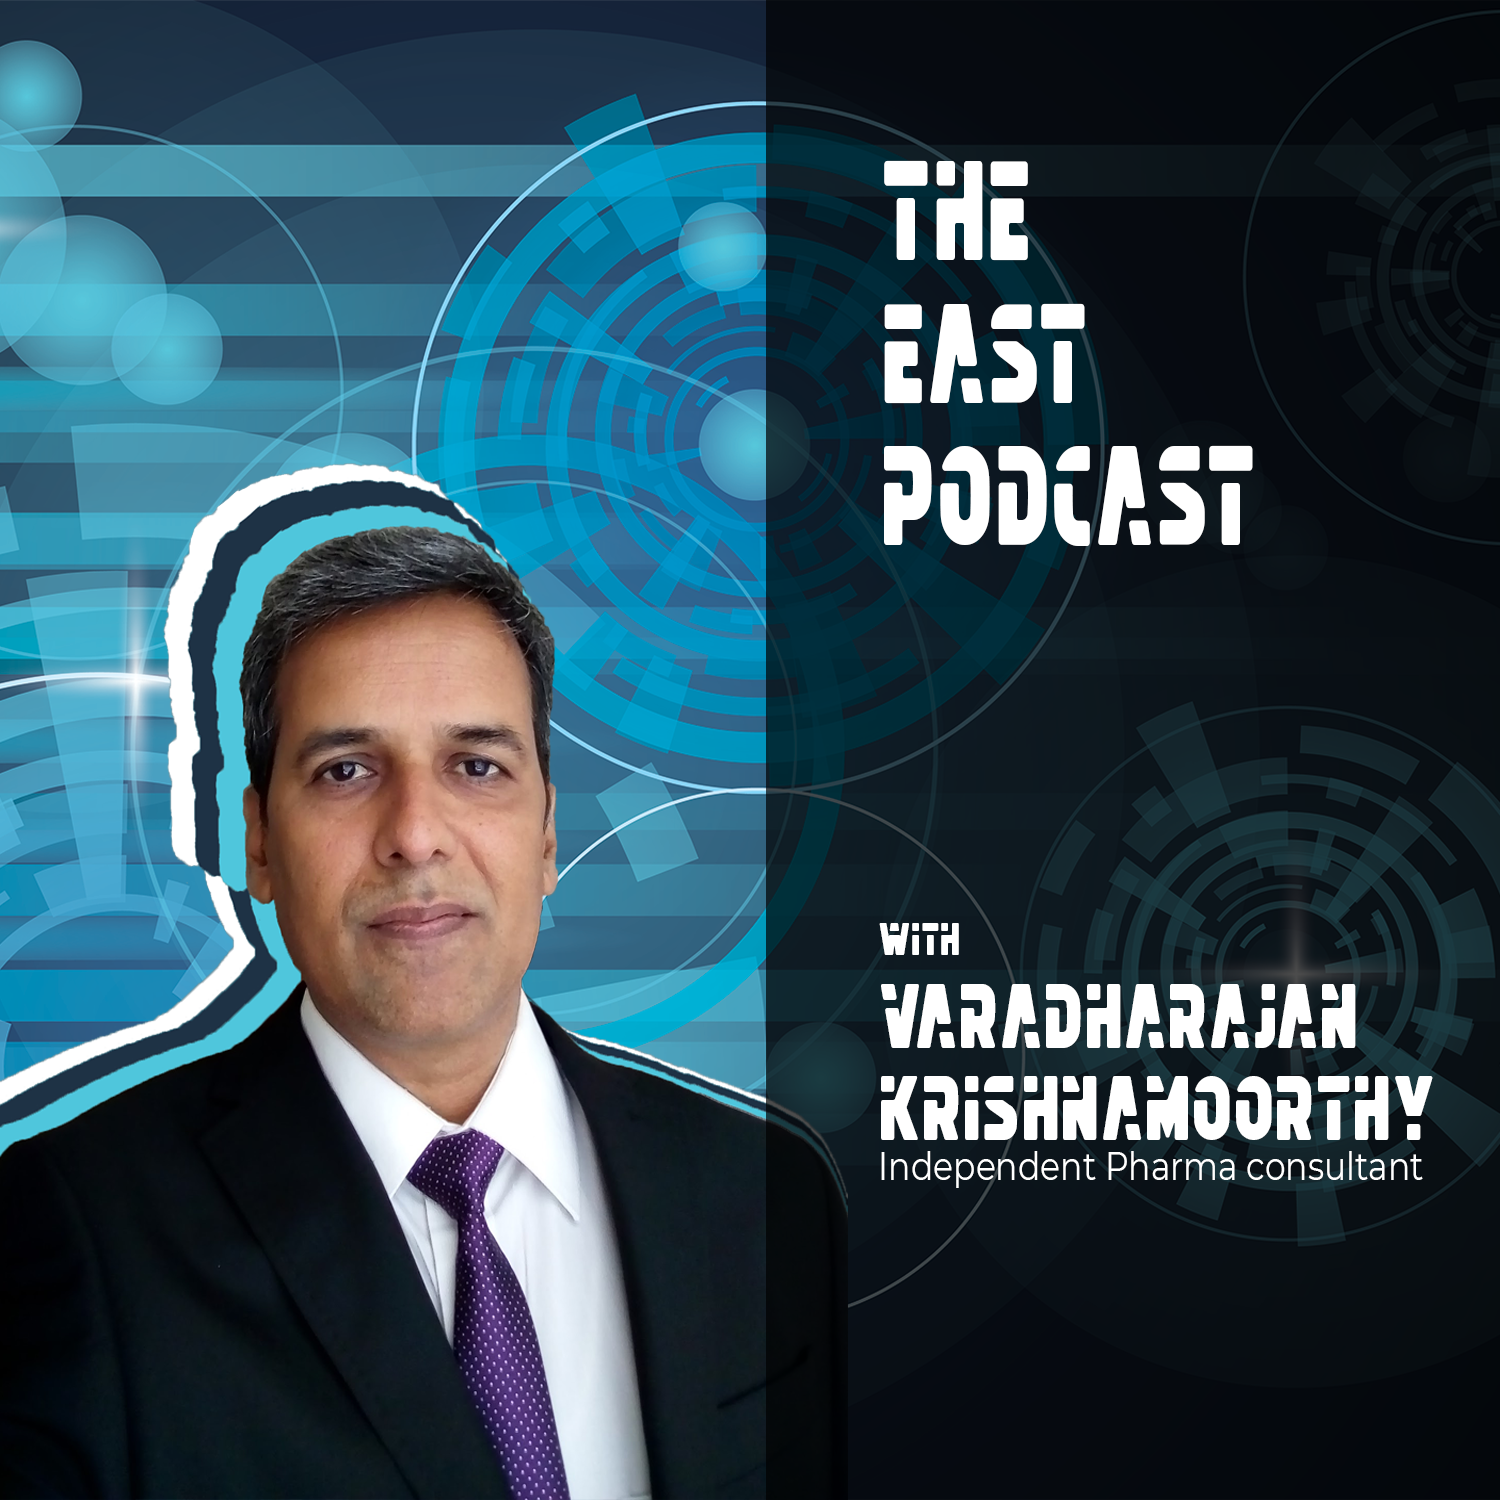 Artwork for podcast The EAST Podcast